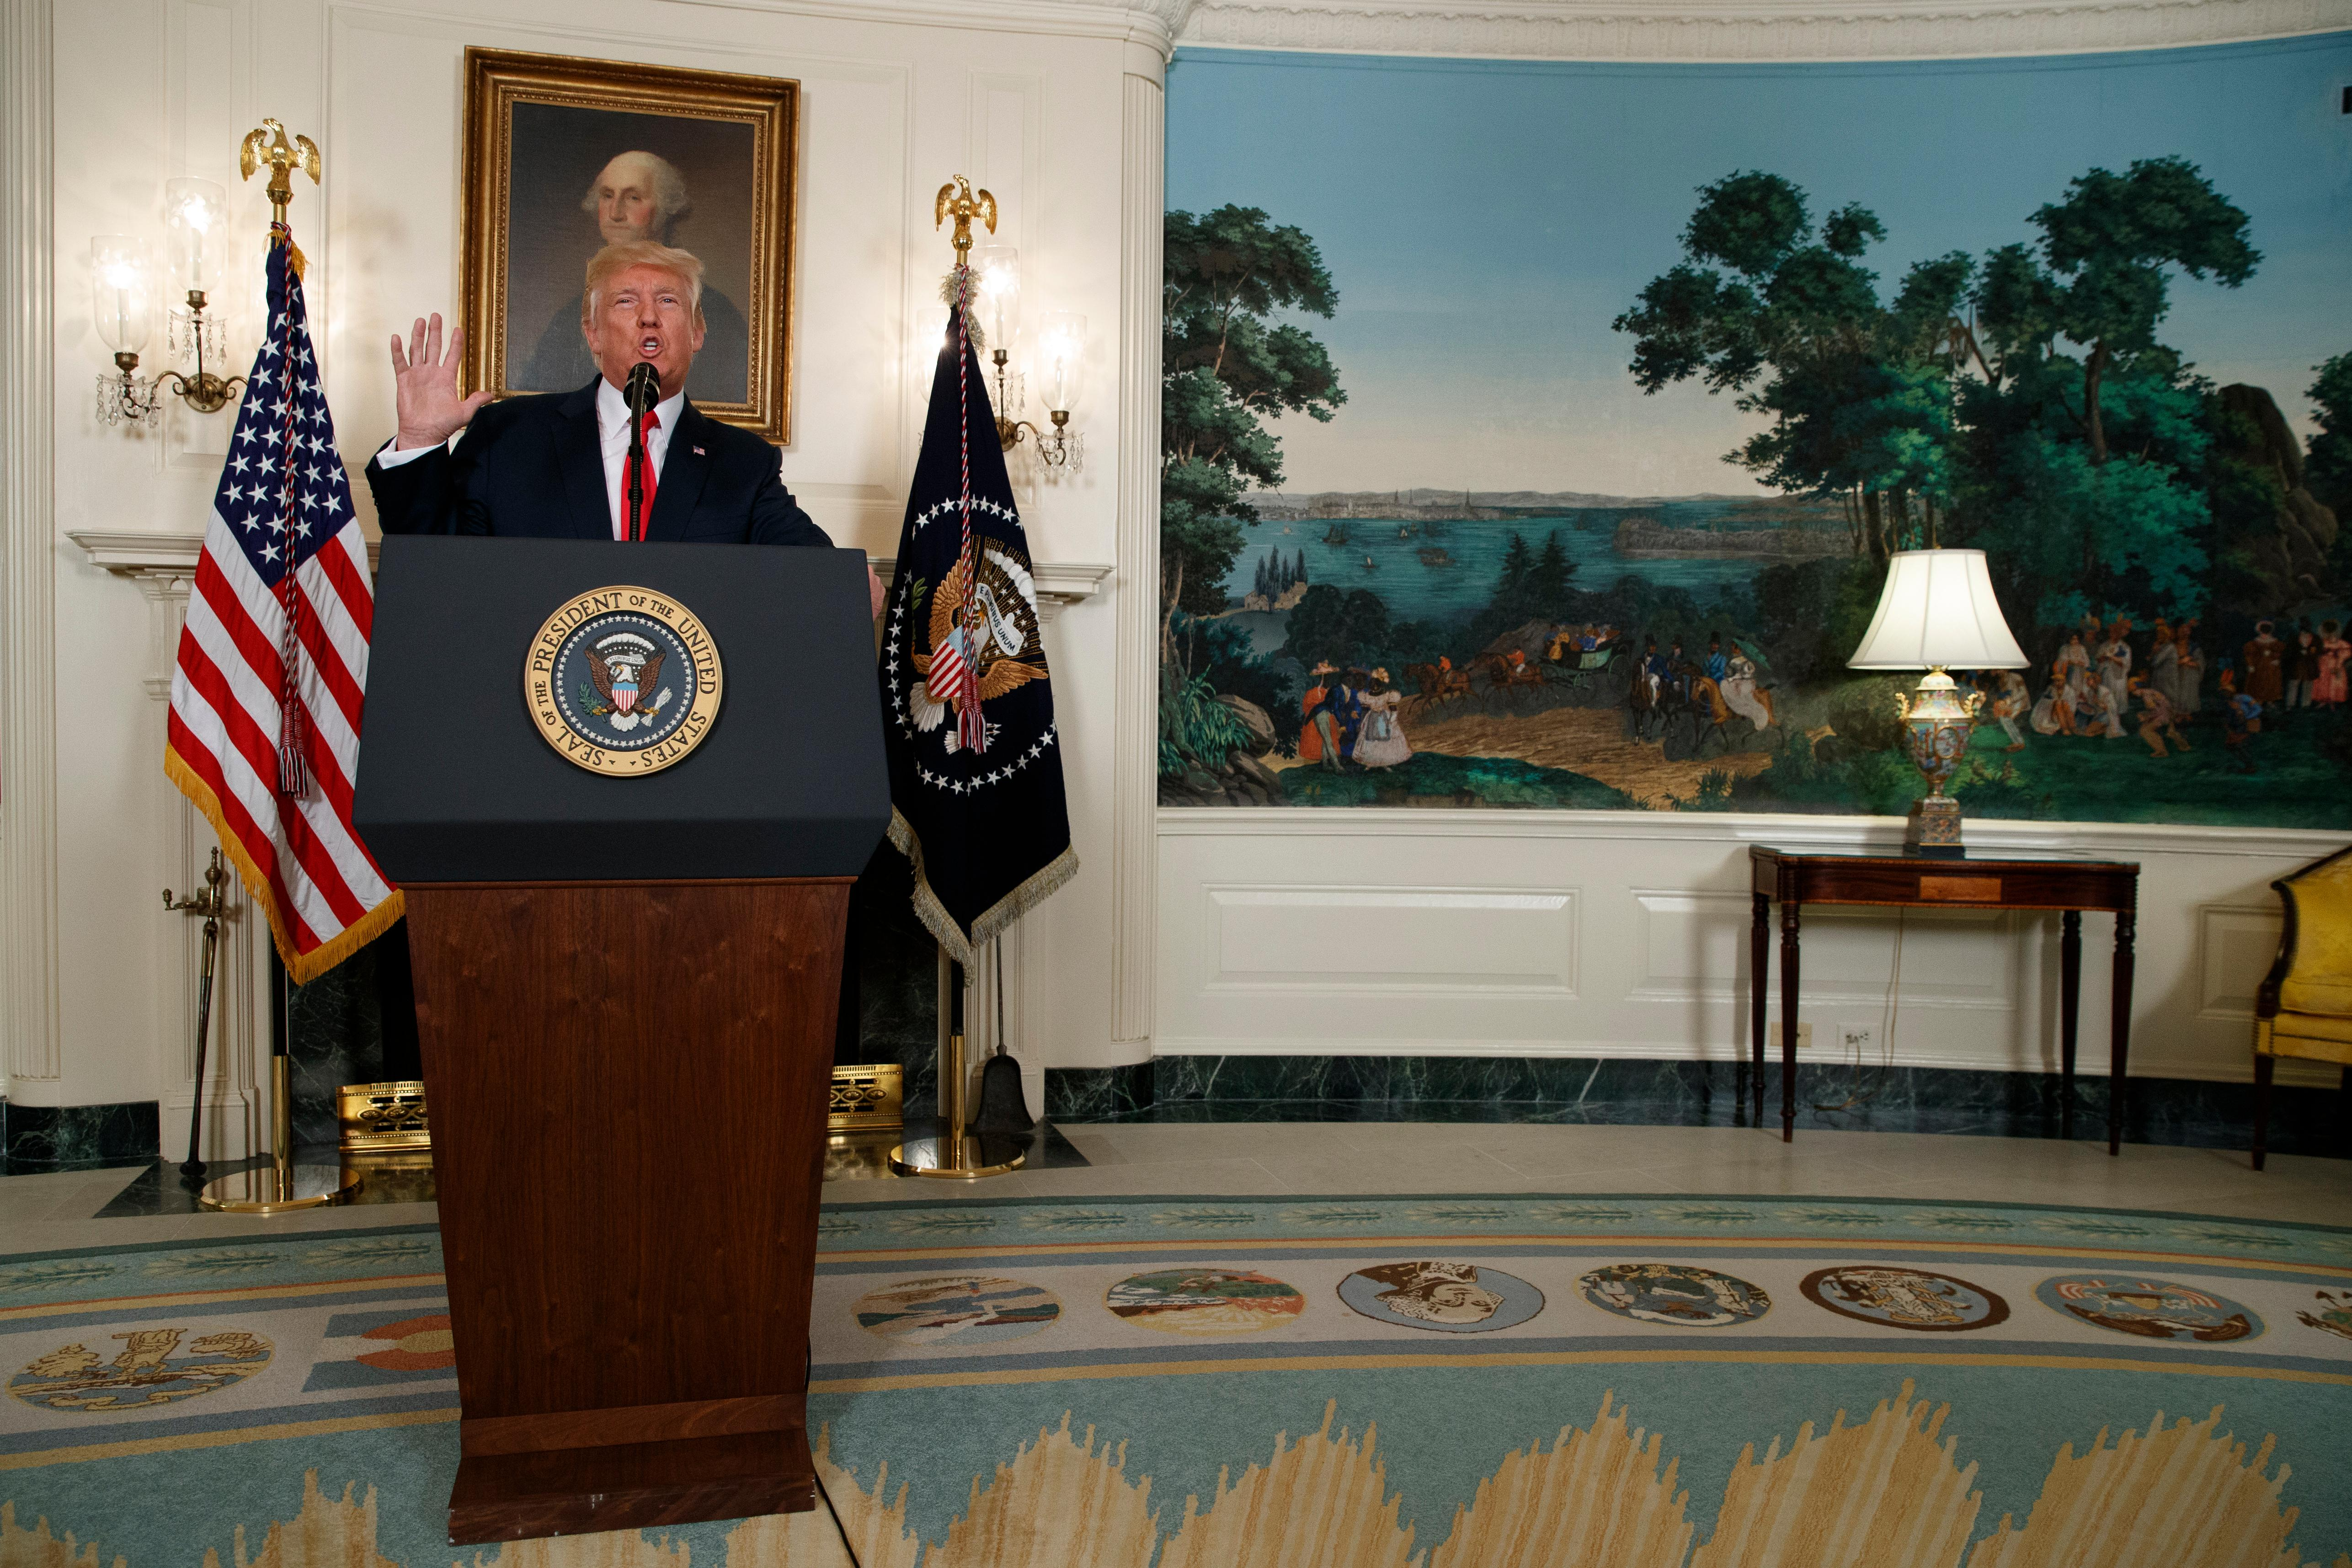 President Donald Trump speaks about the deadly white nationalist rally in Charlottesville, Va., Monday, Aug. 14, 2017, in the Diplomatic Room of the White House in Washington. (AP Photo/Evan Vucci)